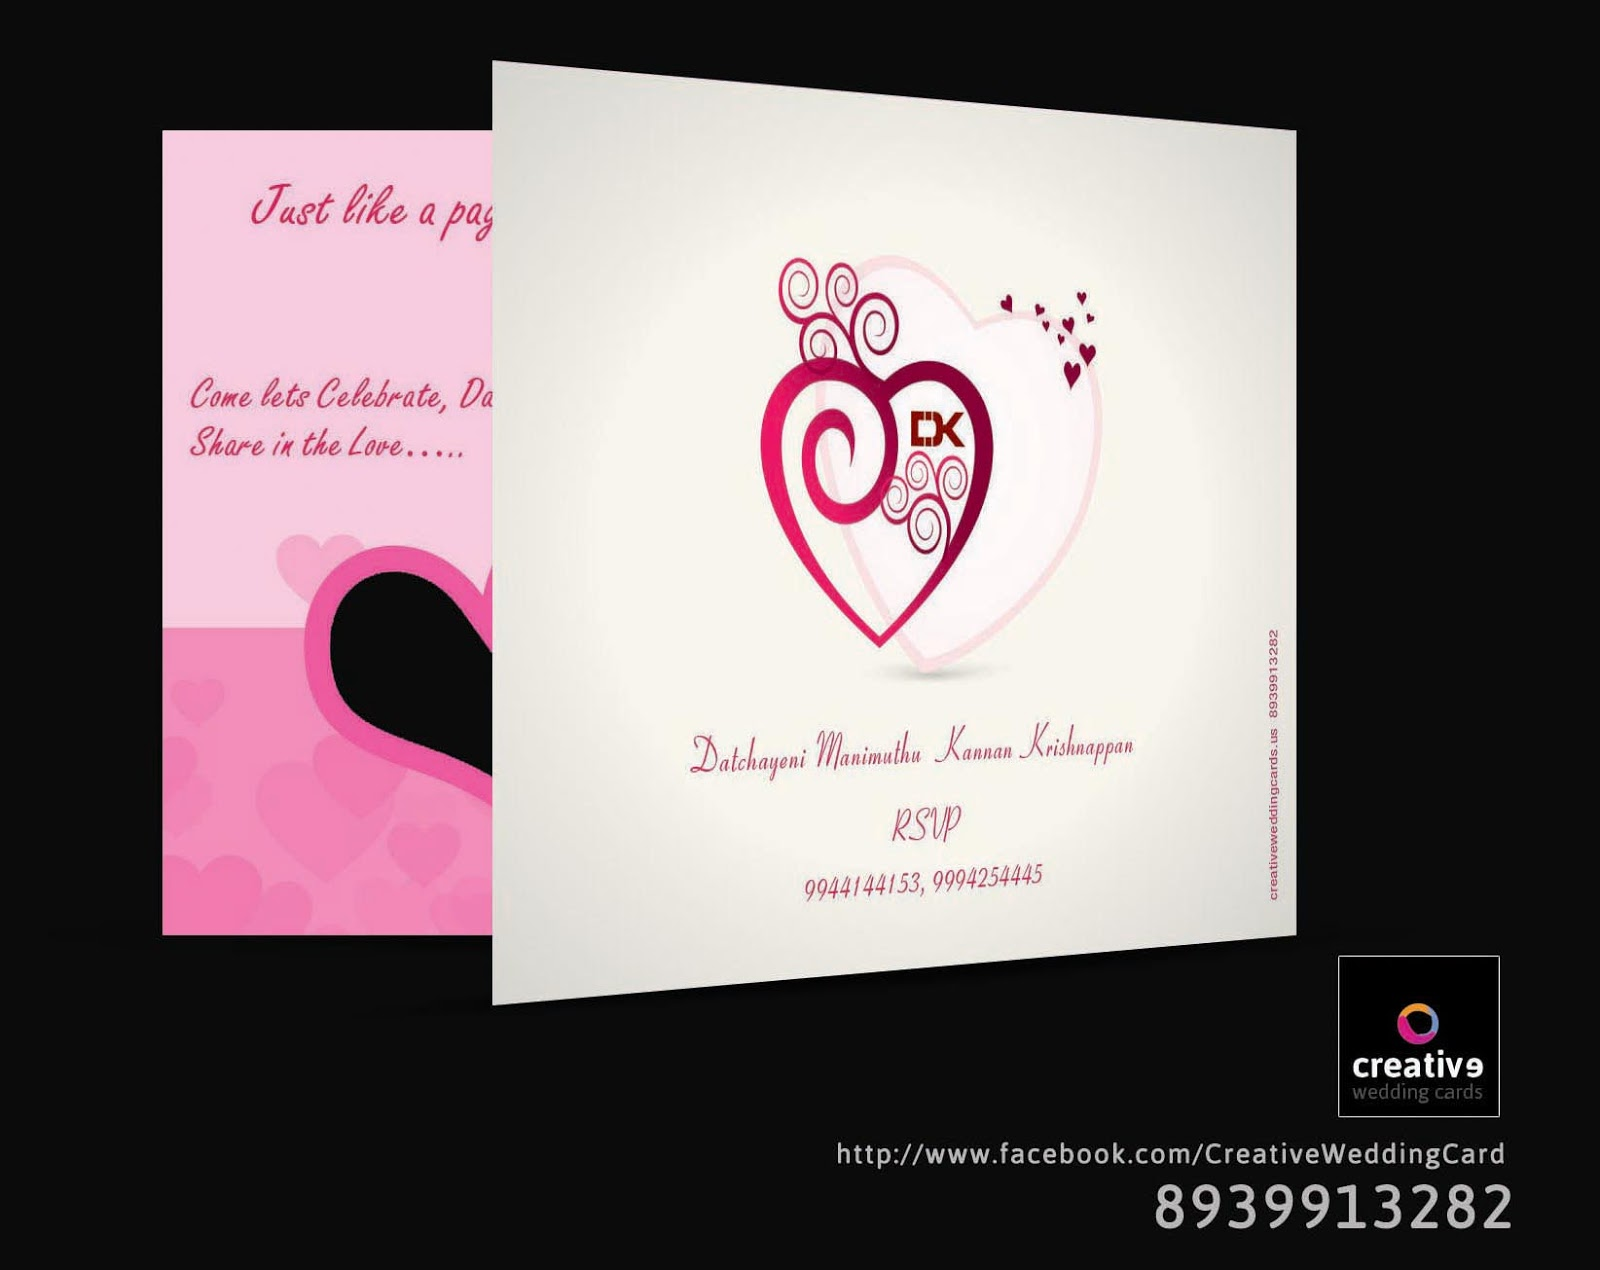 creative wedding cards in chennai - 28 images - unique wedding cards ...